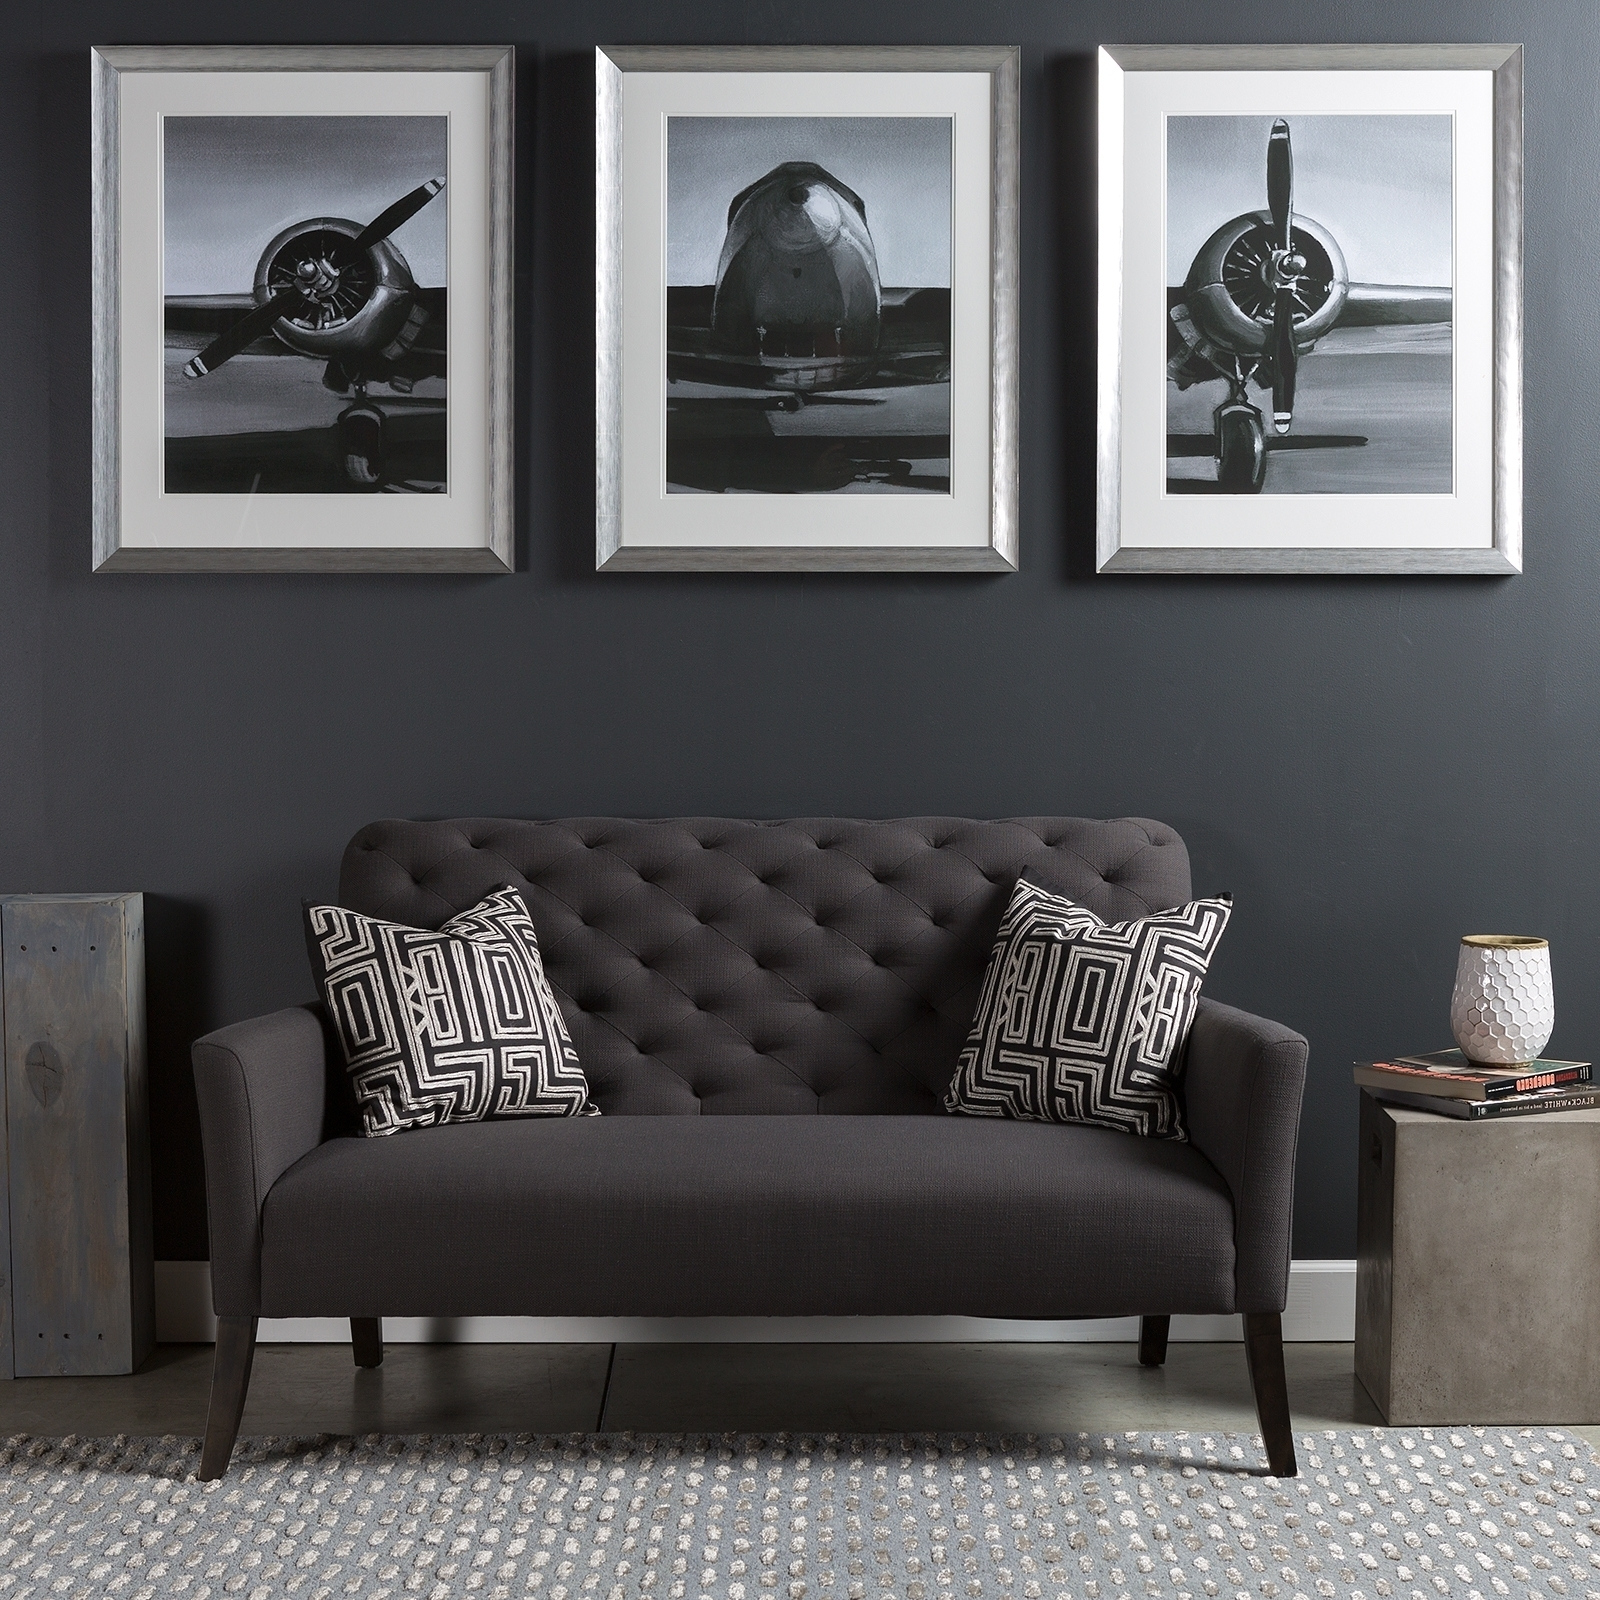 Triptych Wall Art Piece With A Modern Industrial Flare A Series inside Industrial Wall Art (Image 14 of 20)